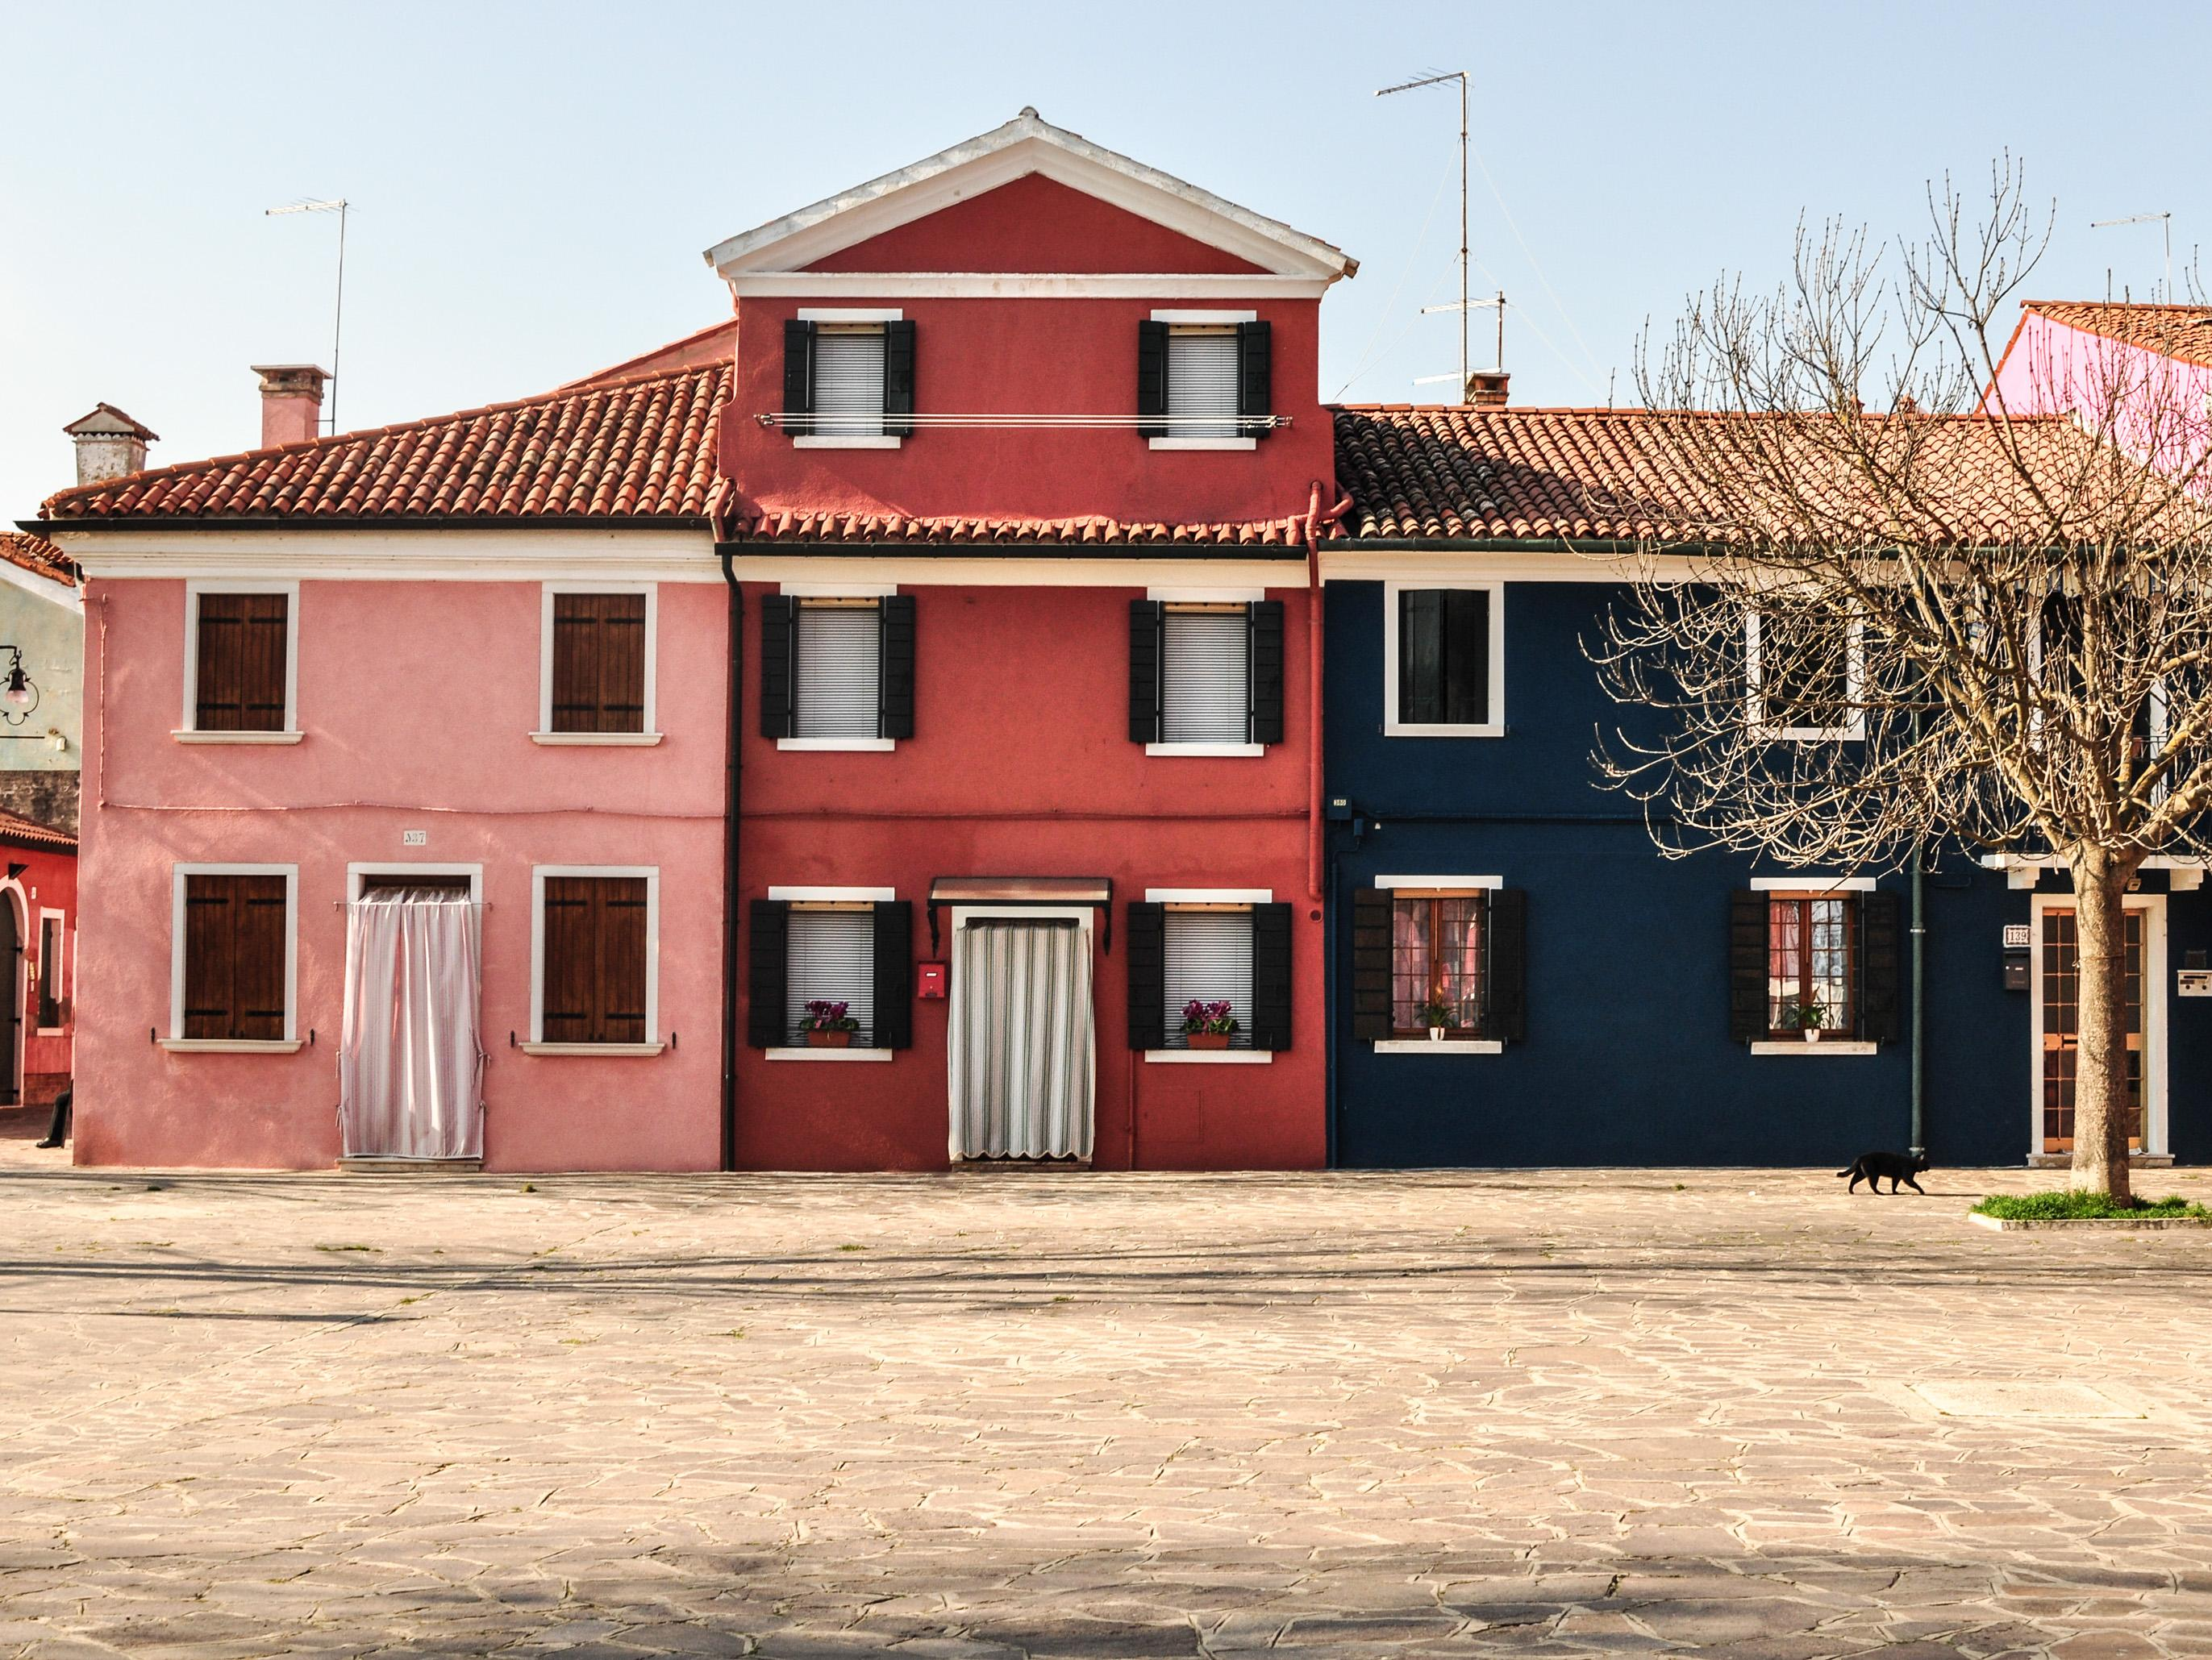 Burano, Italy, Venice, arhitecture, color, colors, house, multicolor, paint, painted, travel, village, water